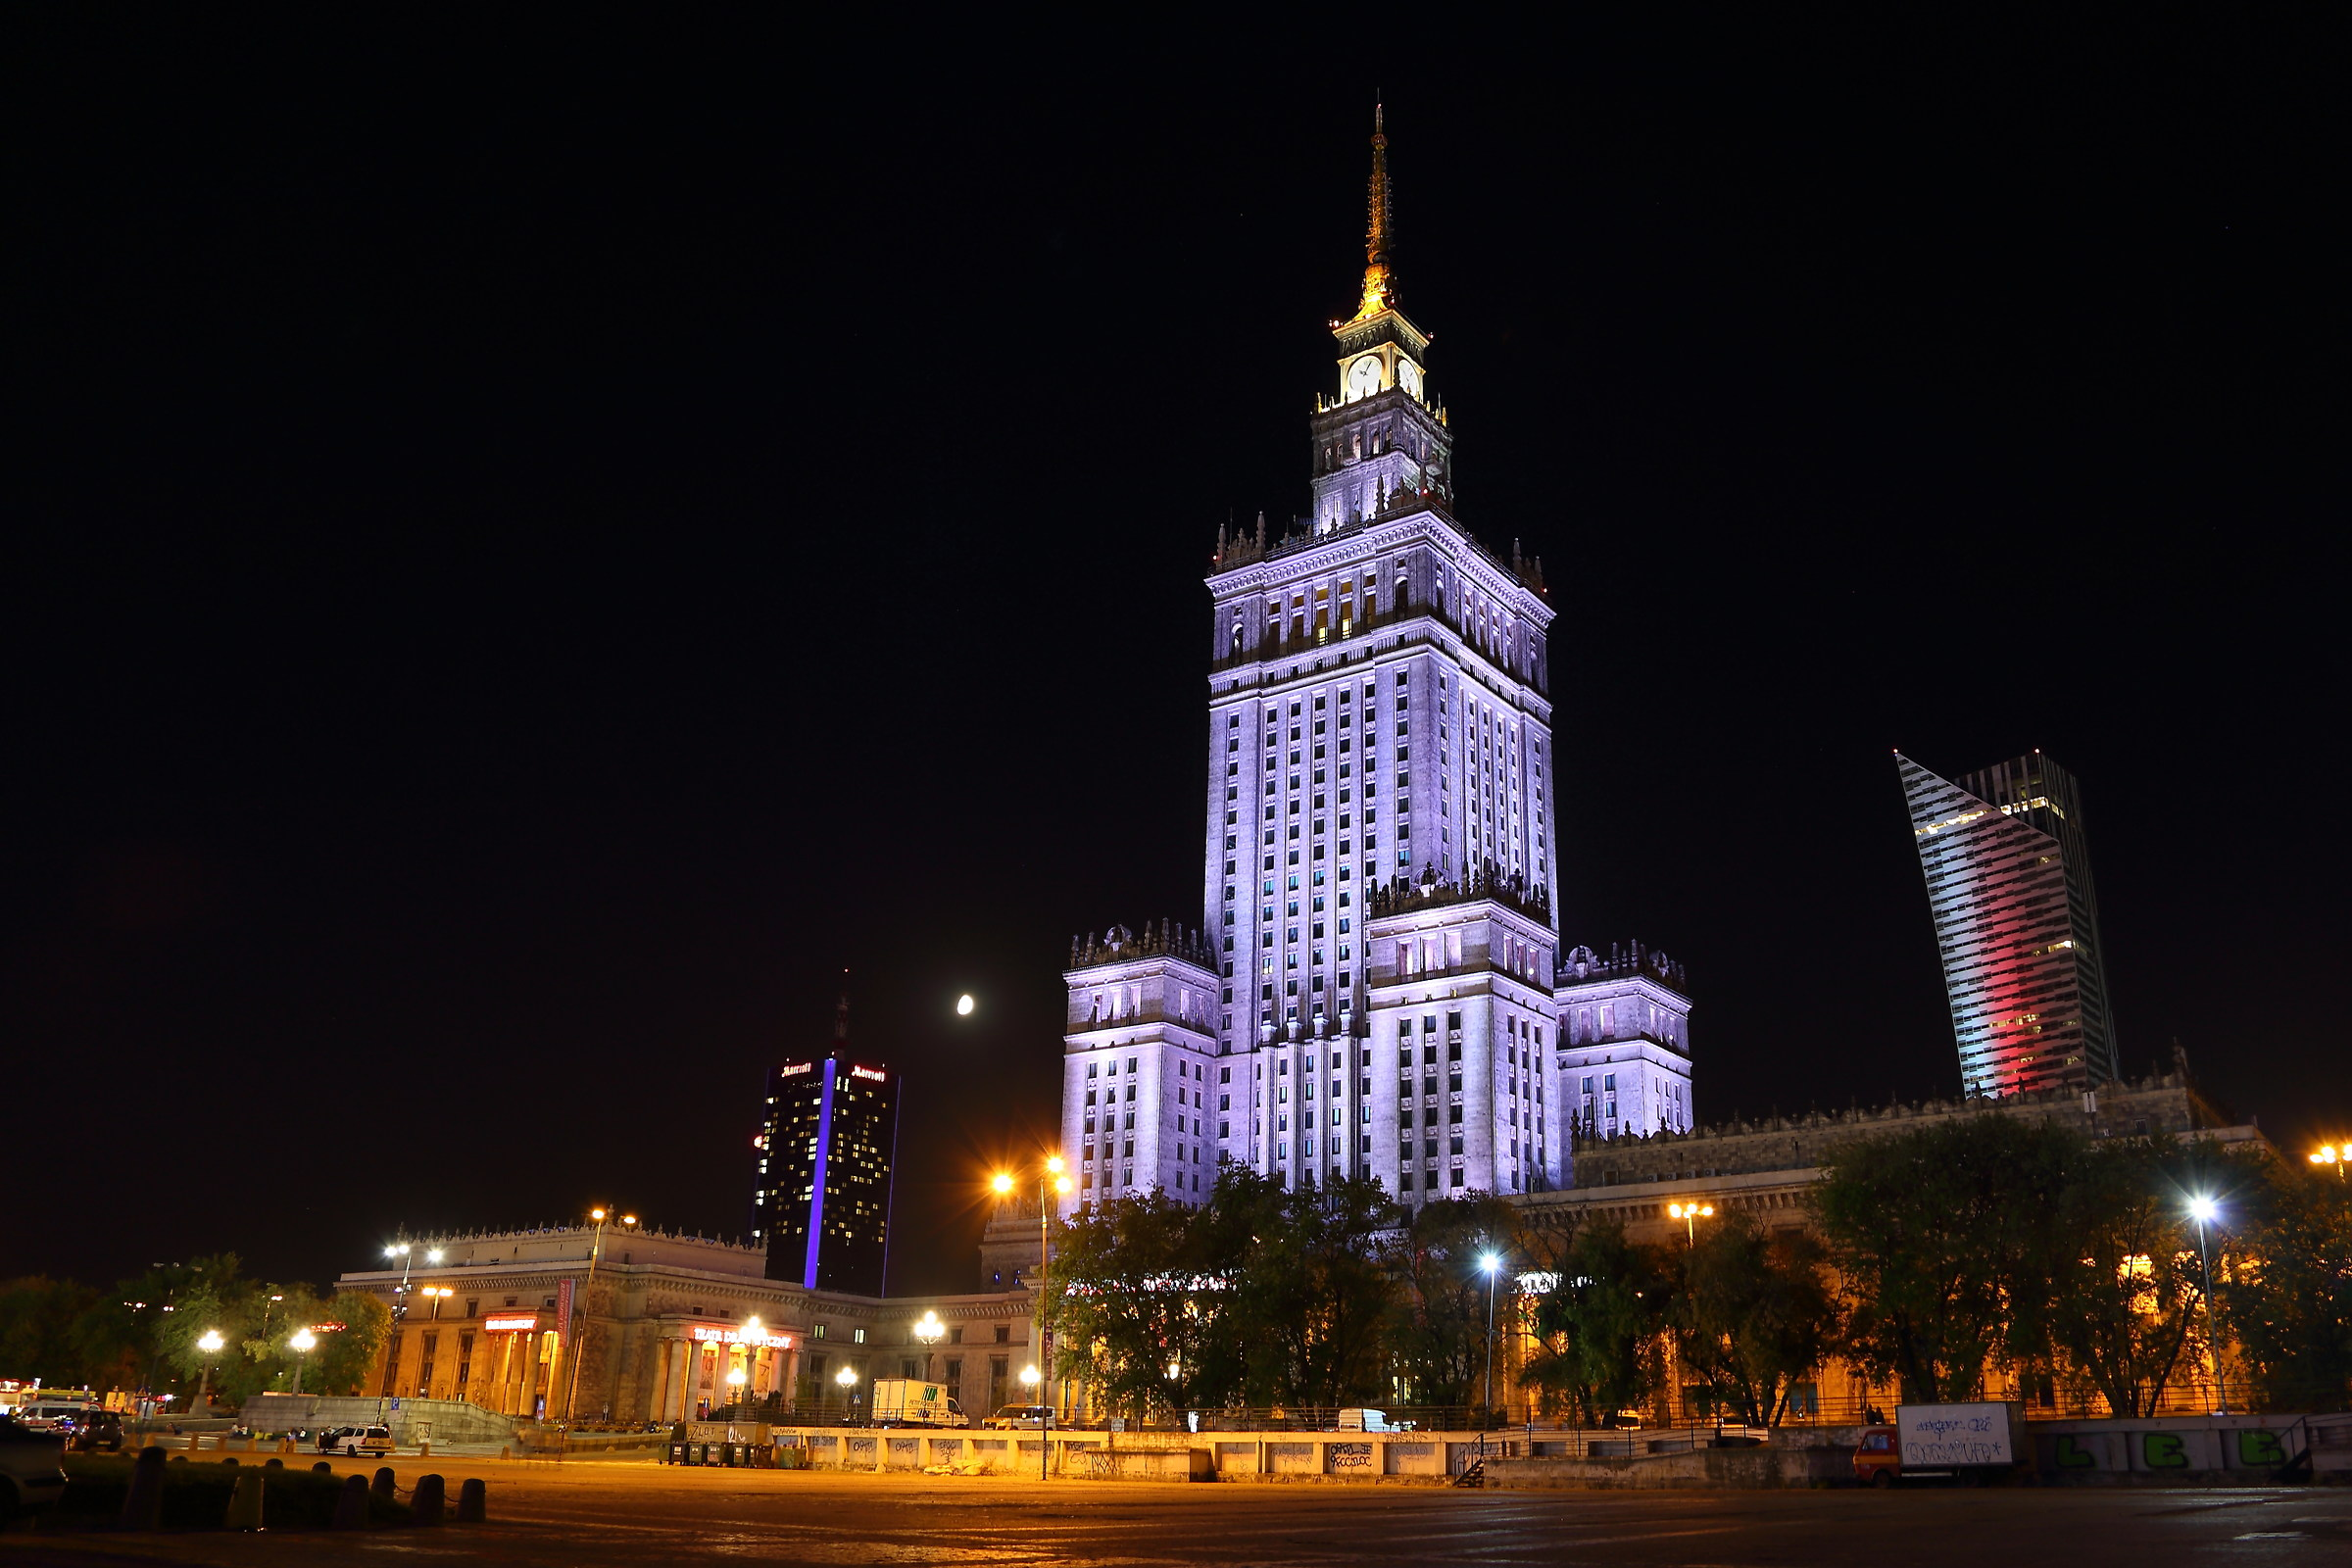 The Palace of Culture and science...